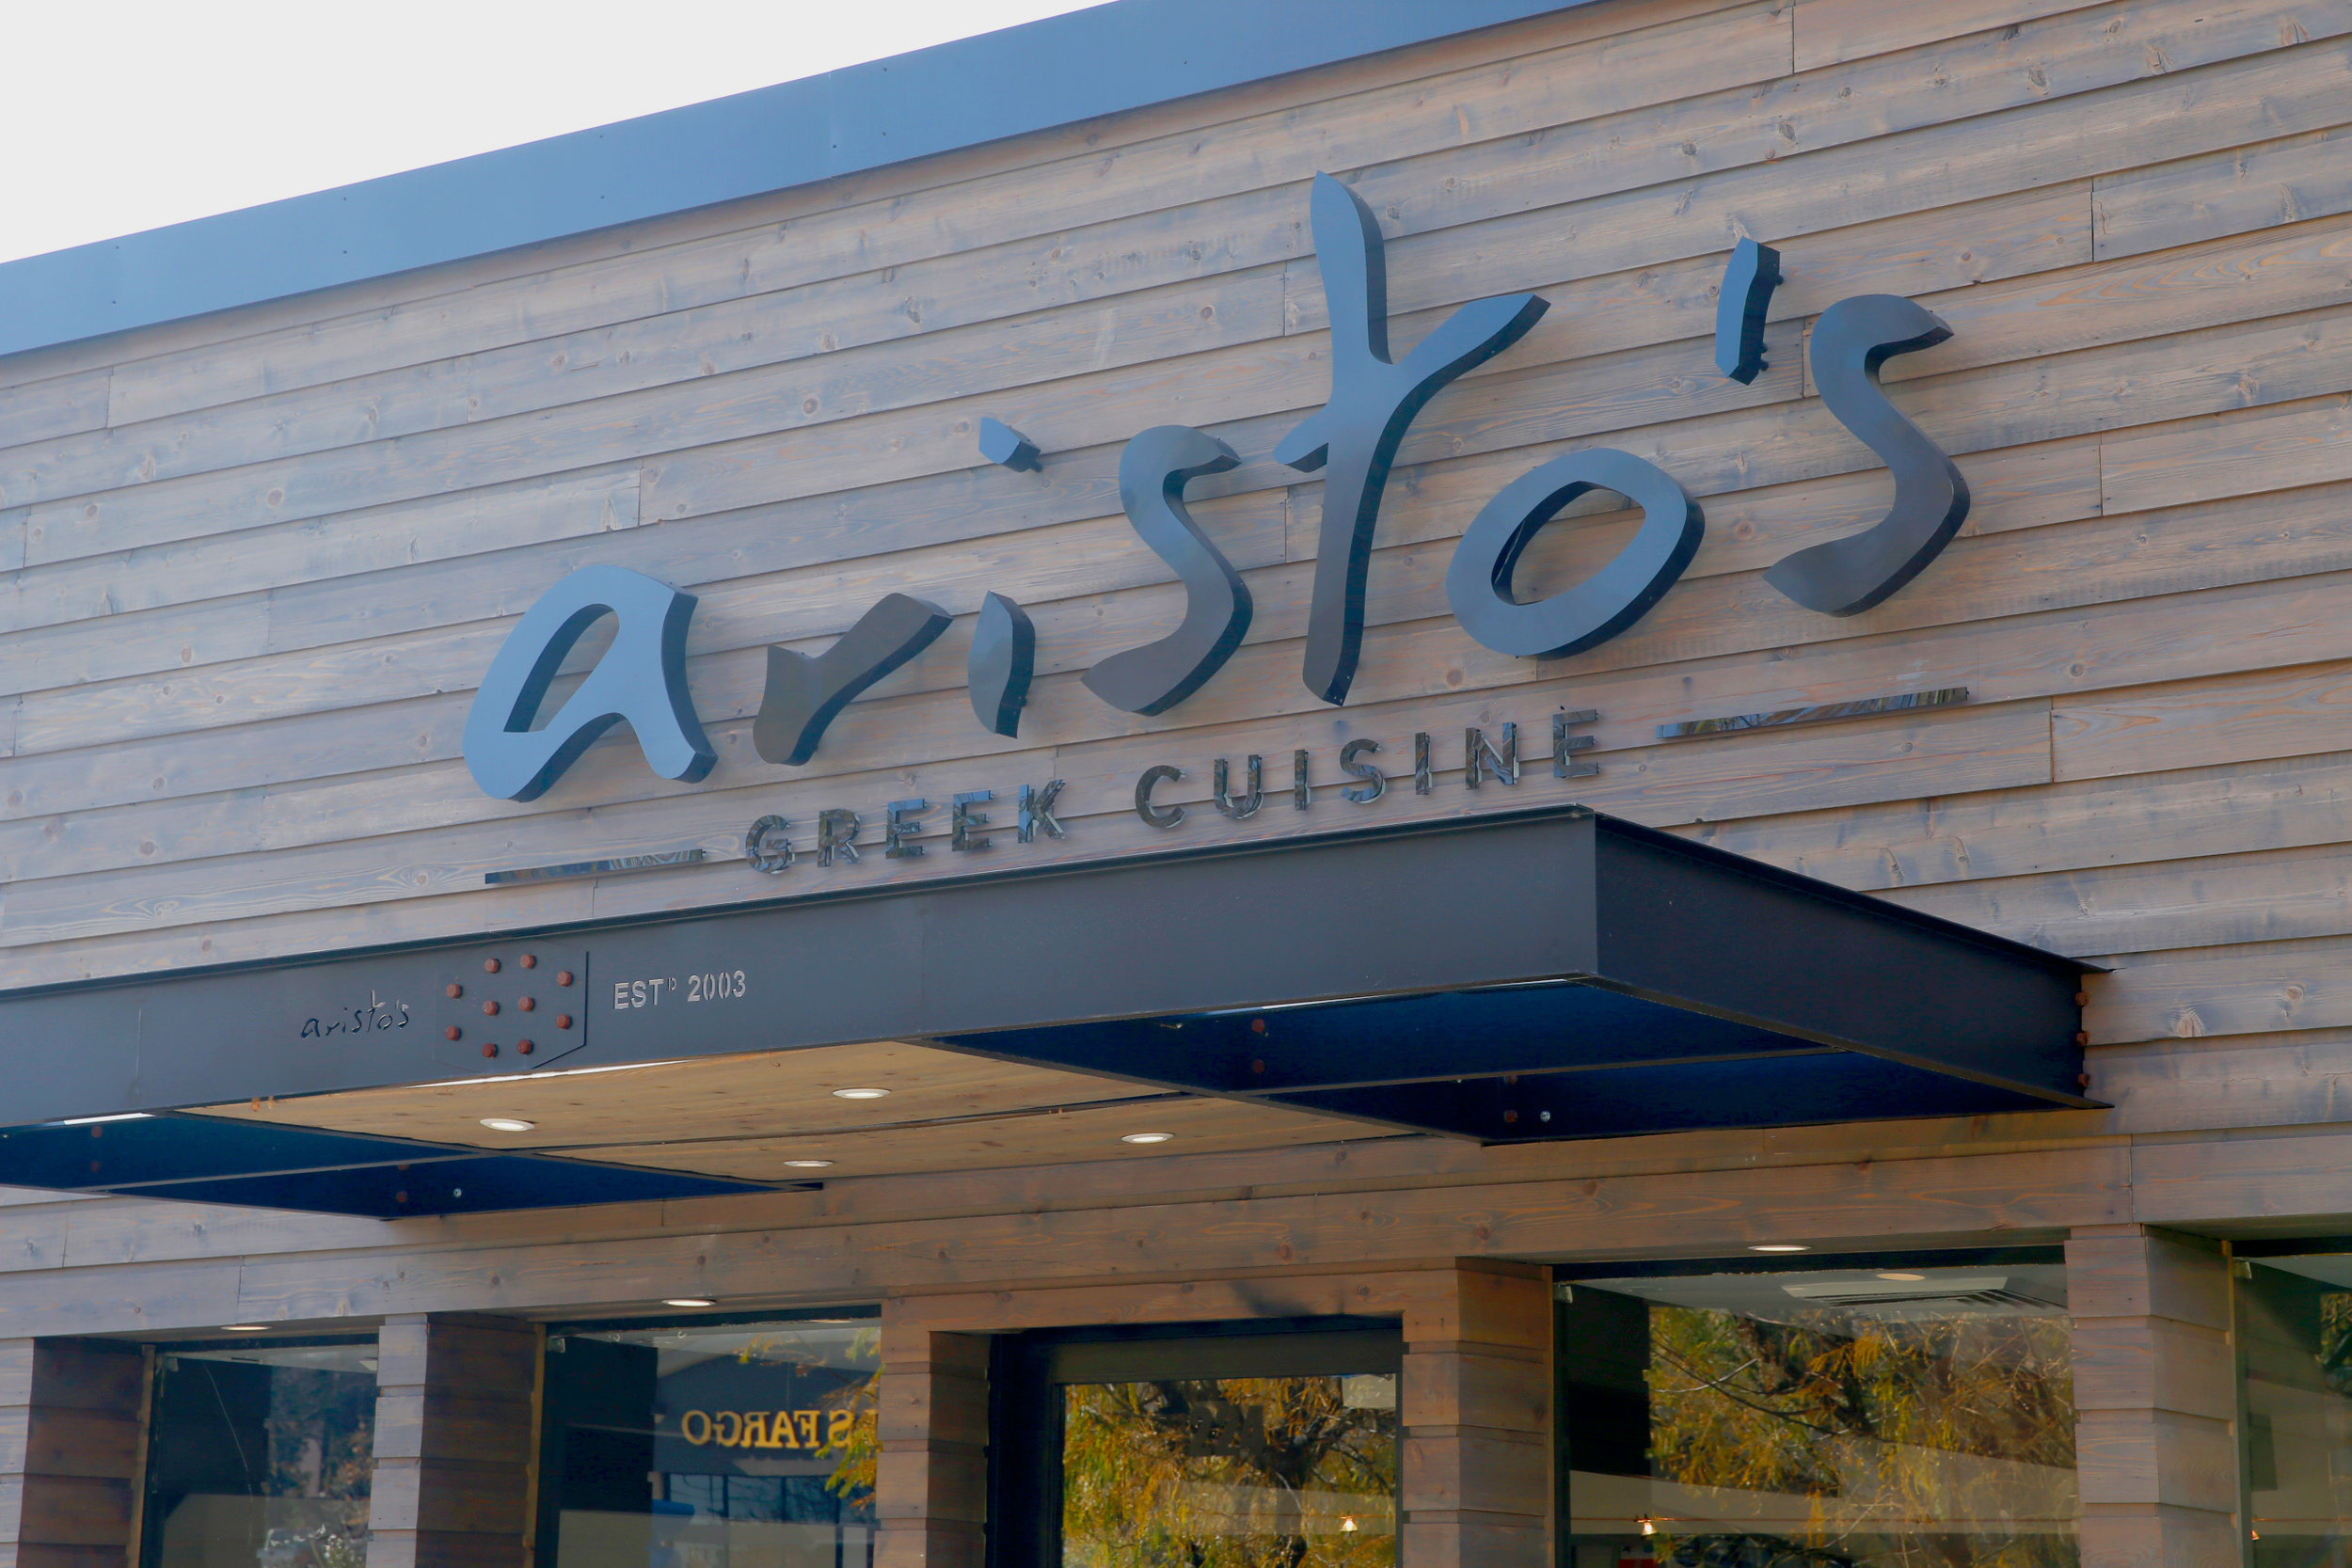 Aristo's Story - promotional video and company story